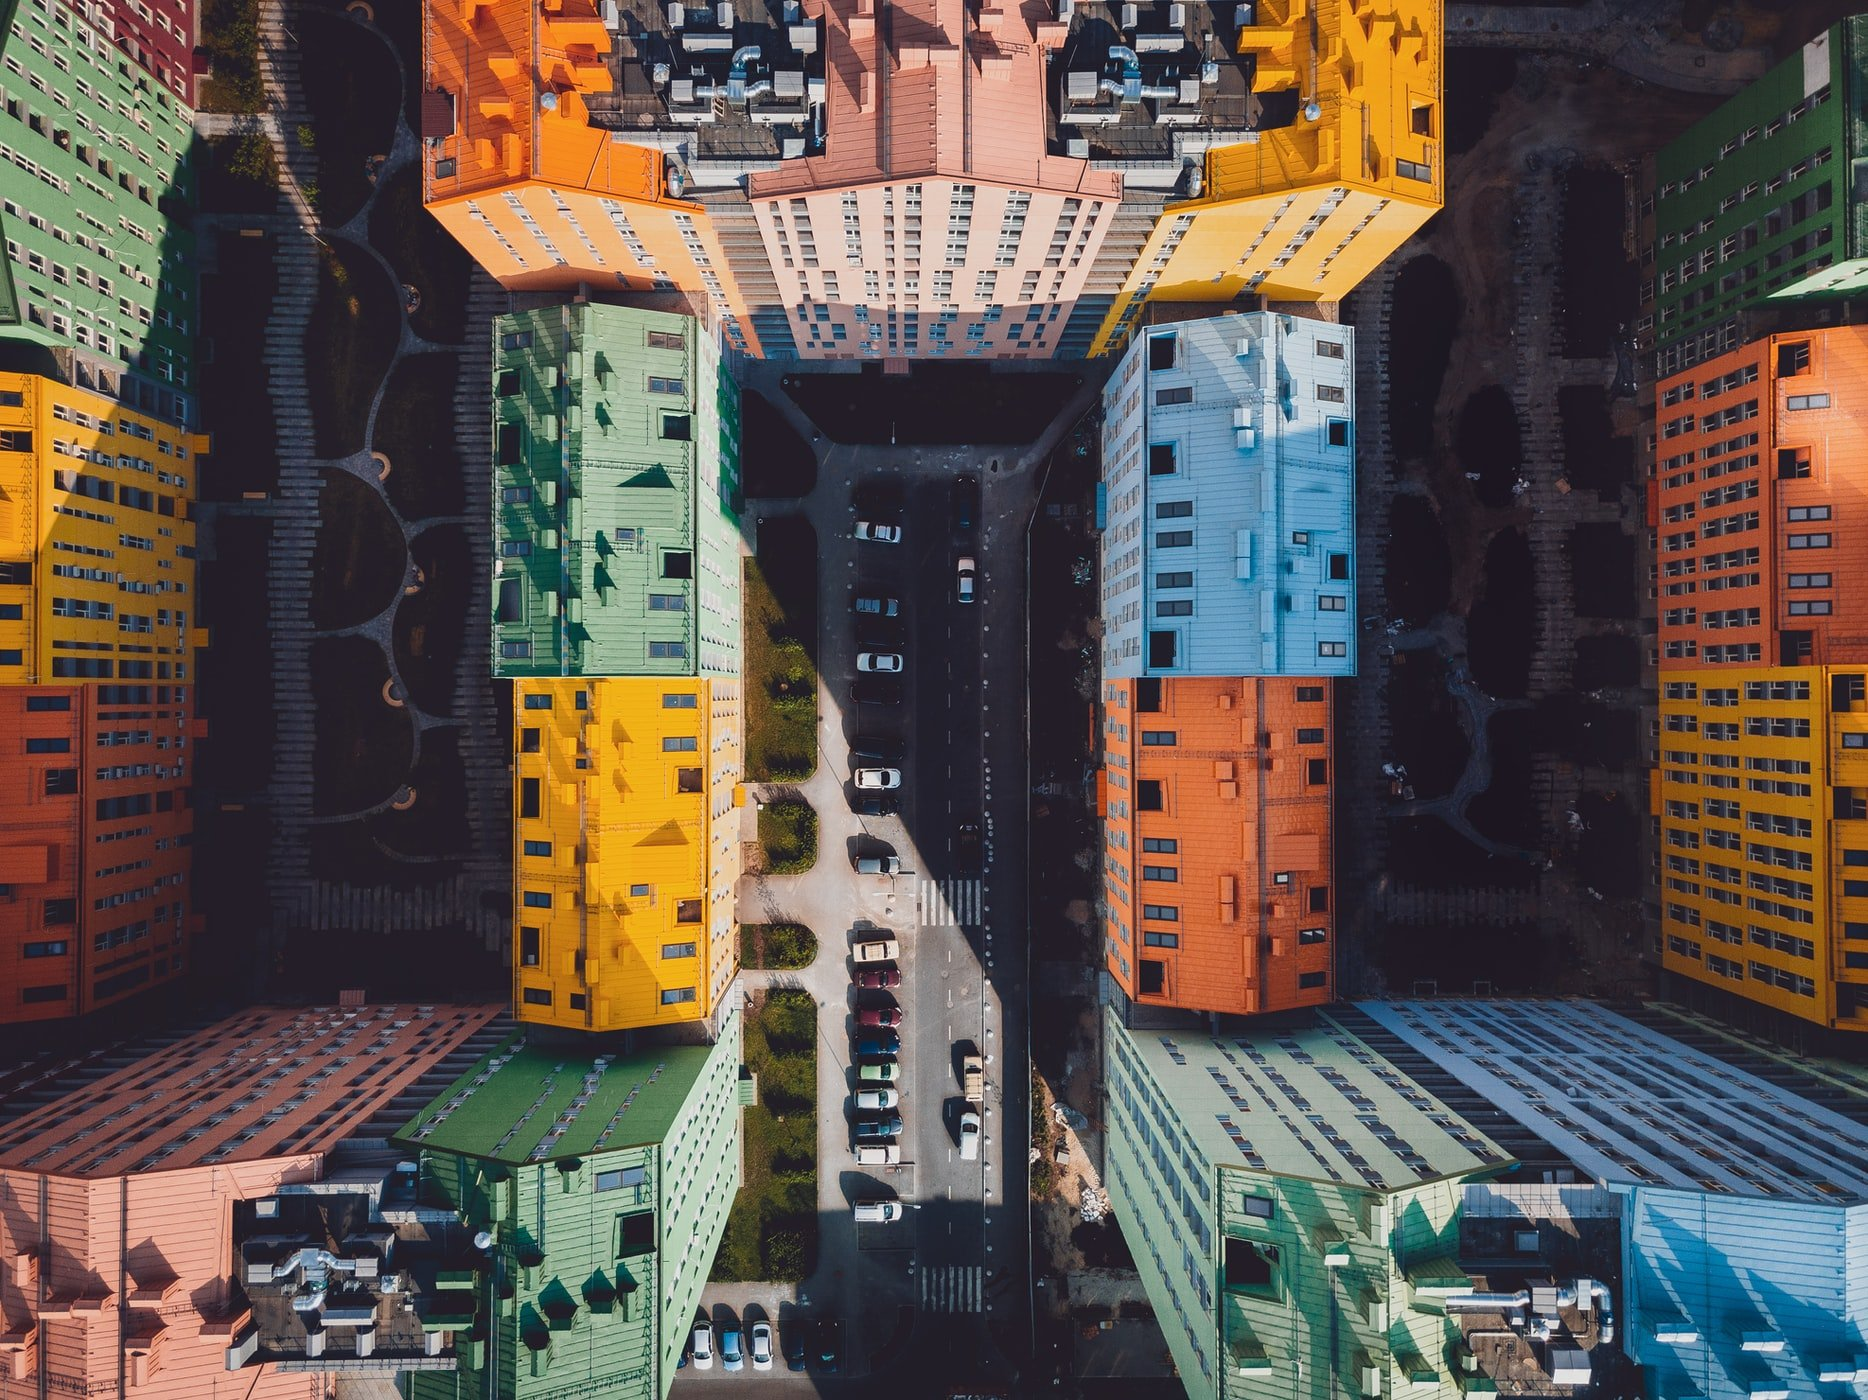 Sky view of shipping containers